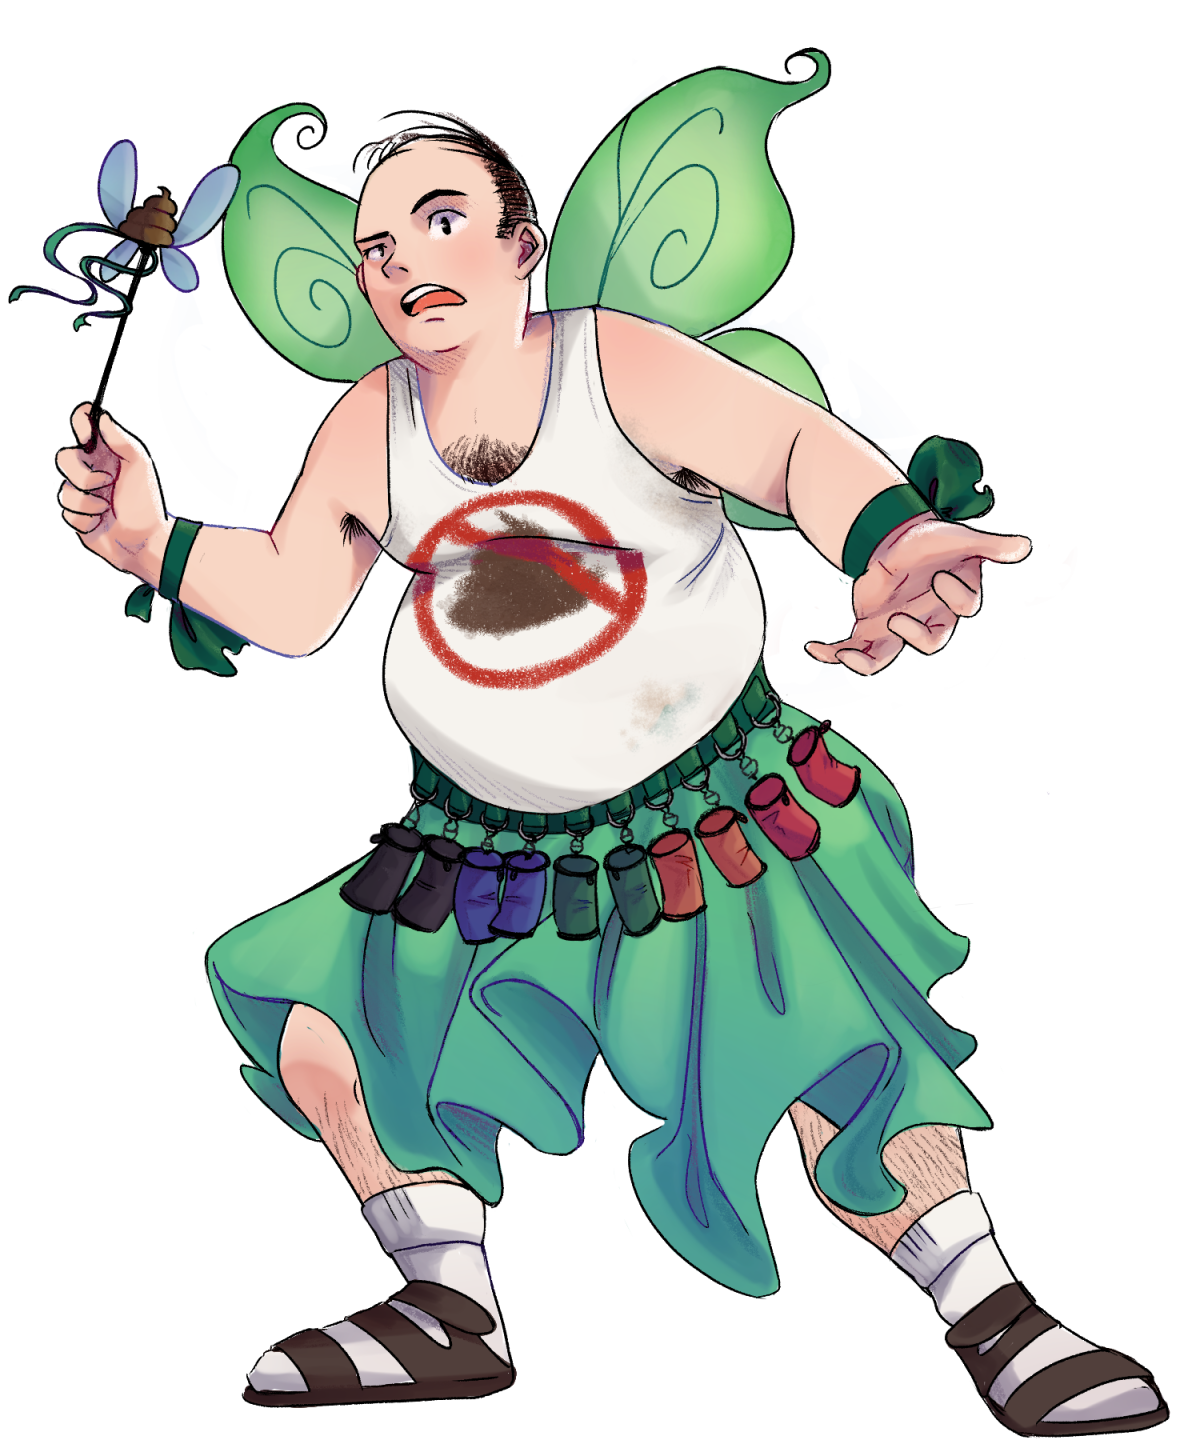 Poop Fairy dressed in his iconic outfit consisting of green fairy wings, a belt armed with poop bags, a white tank top with a poop symbol crossed out in red, a wand, socks and sandals, with a green skirt.